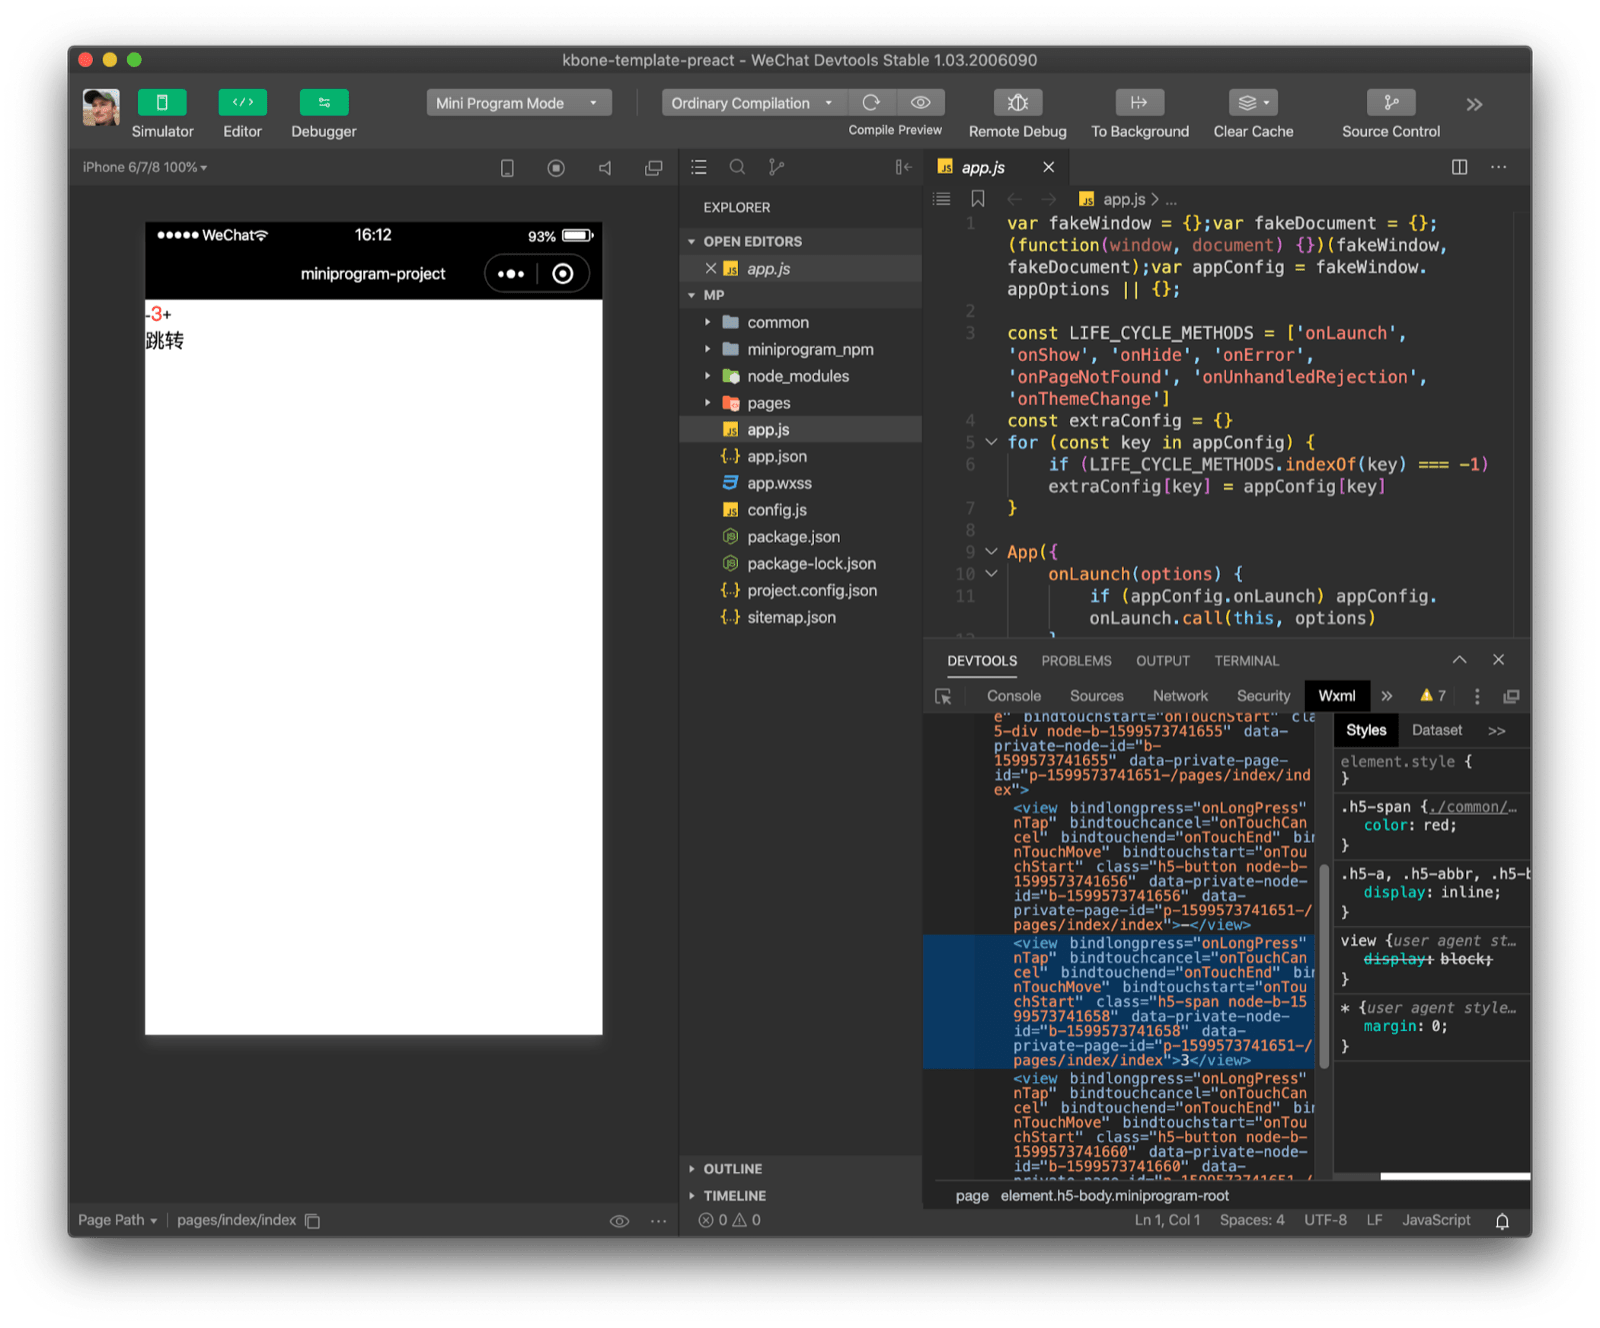 The Preact kbone template demo app opened in WeChat DevTools. Inspecting the DOM structure shows a significant overhead compared to the web app.